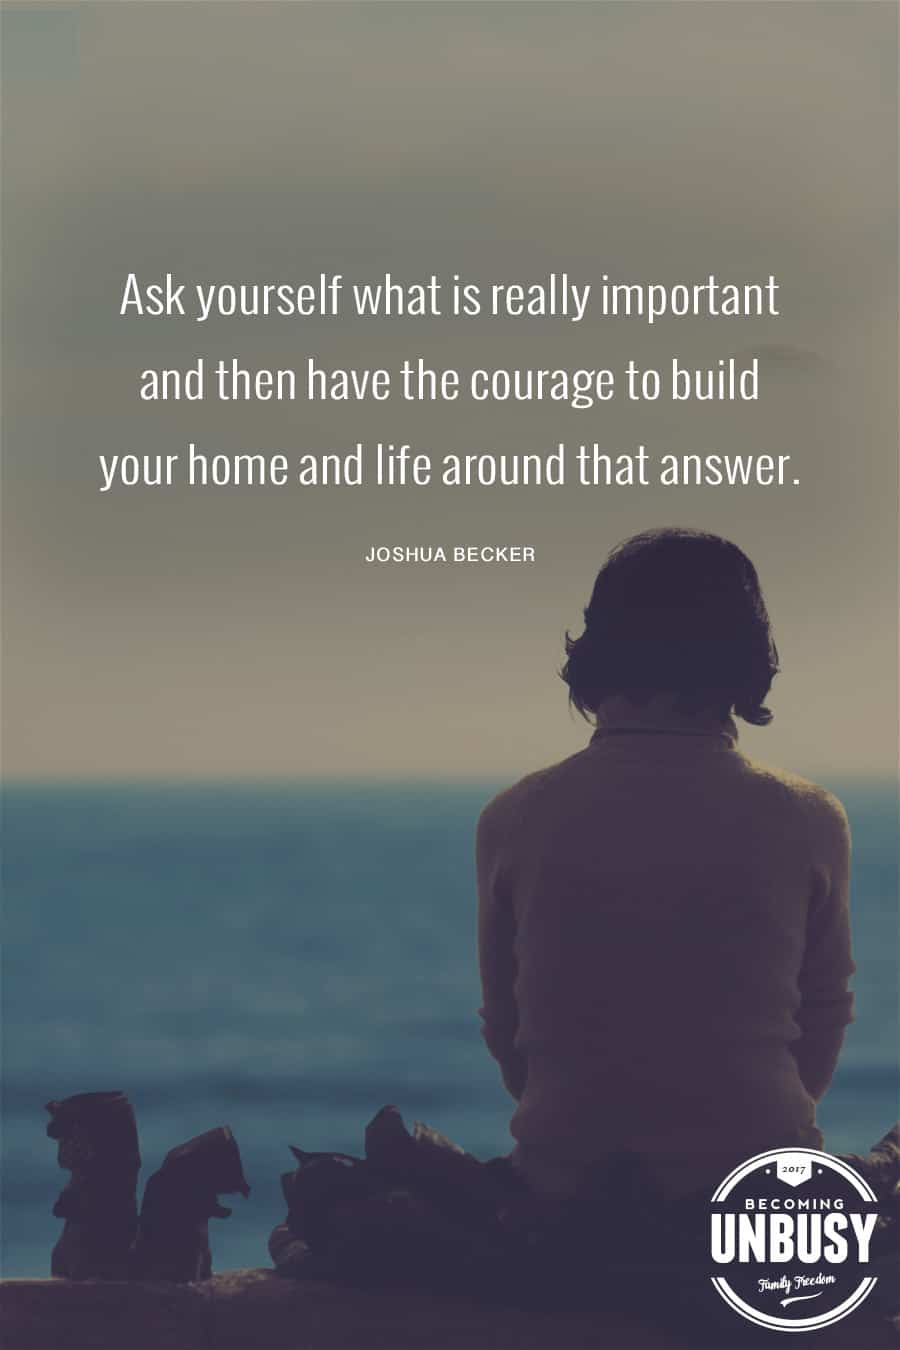 Ask yourself what is really important and then have the courage to build your home and life around that answer. #becomingunbusy *Great post on embracing simplicity